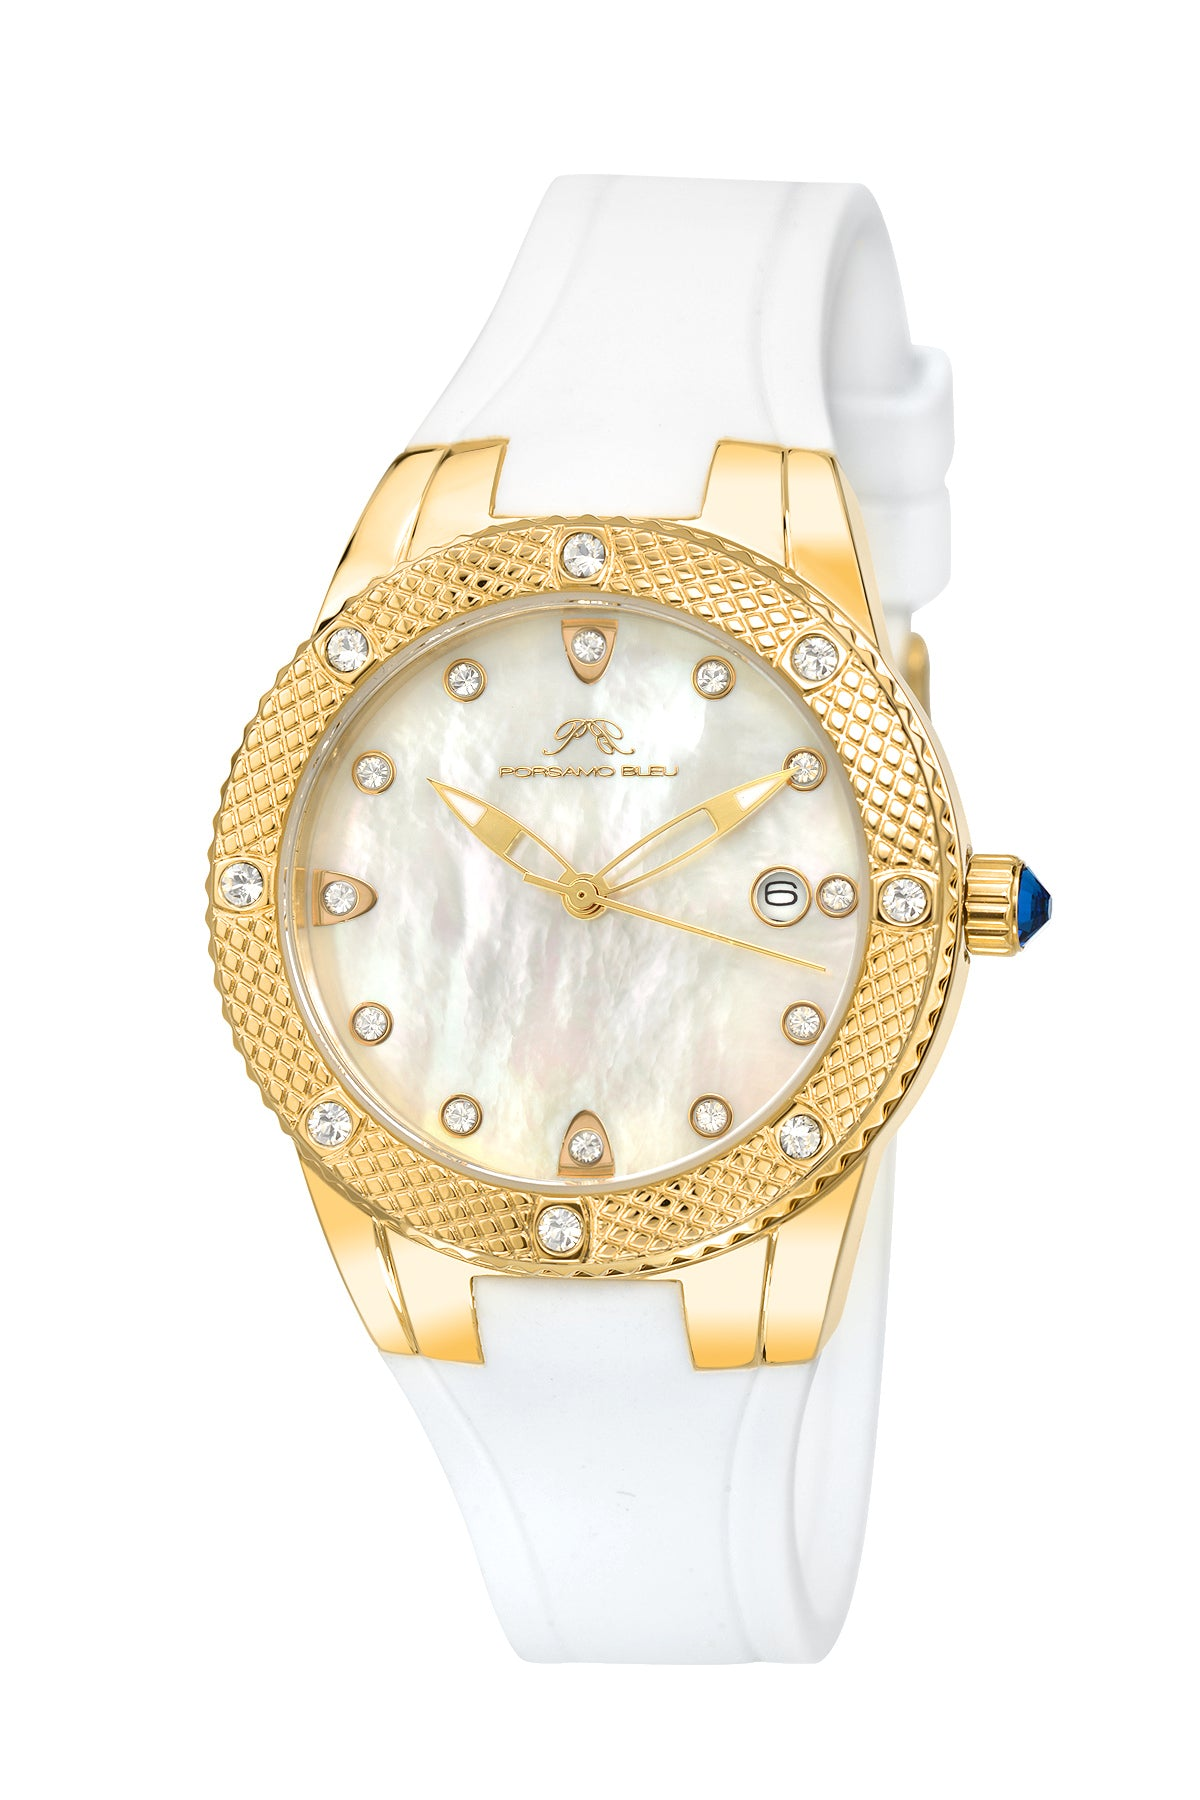 Porsamo Bleu Linda luxury women's watch, silicone strap, gold, white 491BLIR